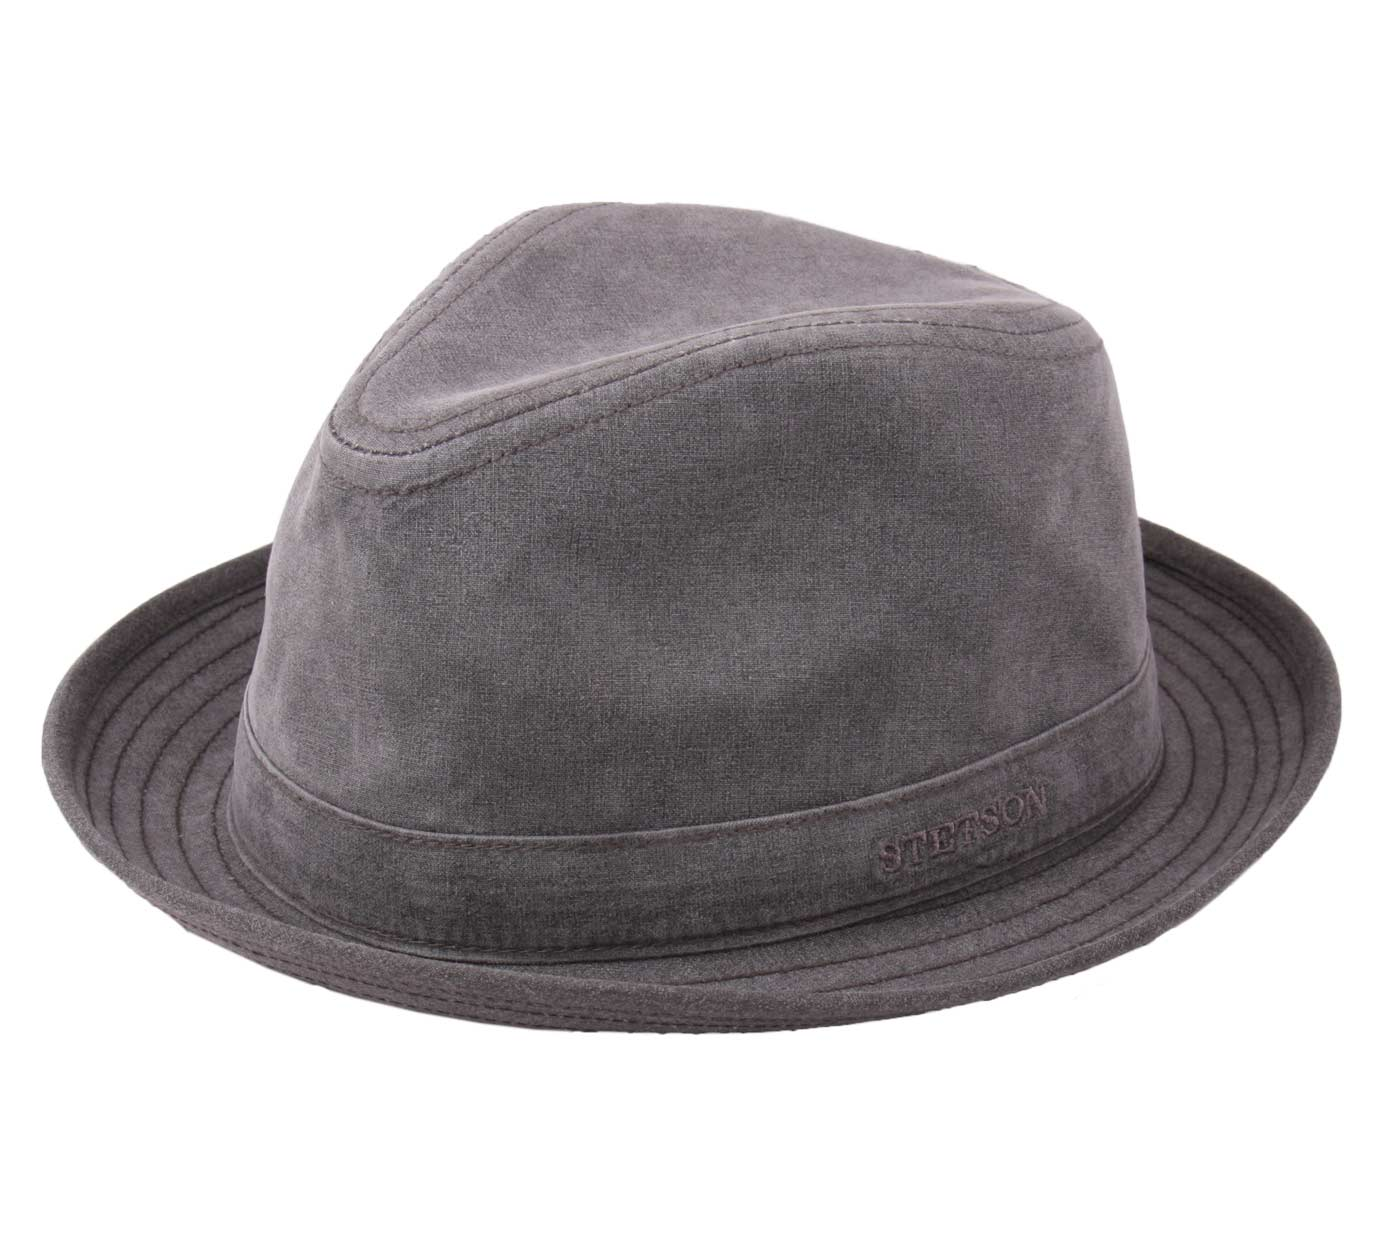 Player Delave - Hats Stetson bdd394db4765